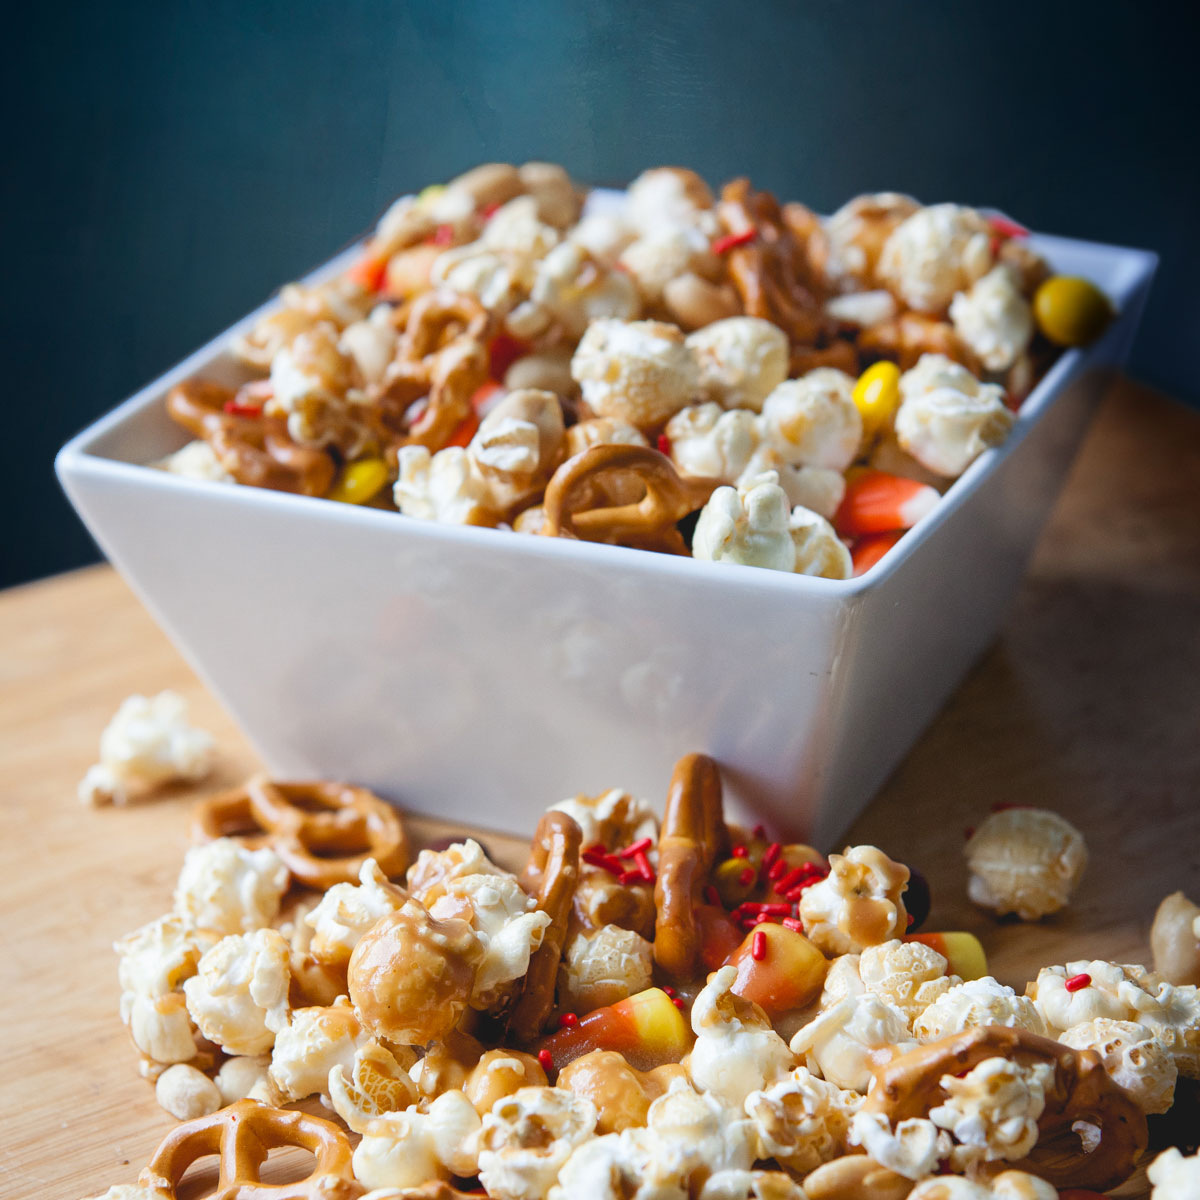 Popcorn and pretzel Halloween mix in a white bowl